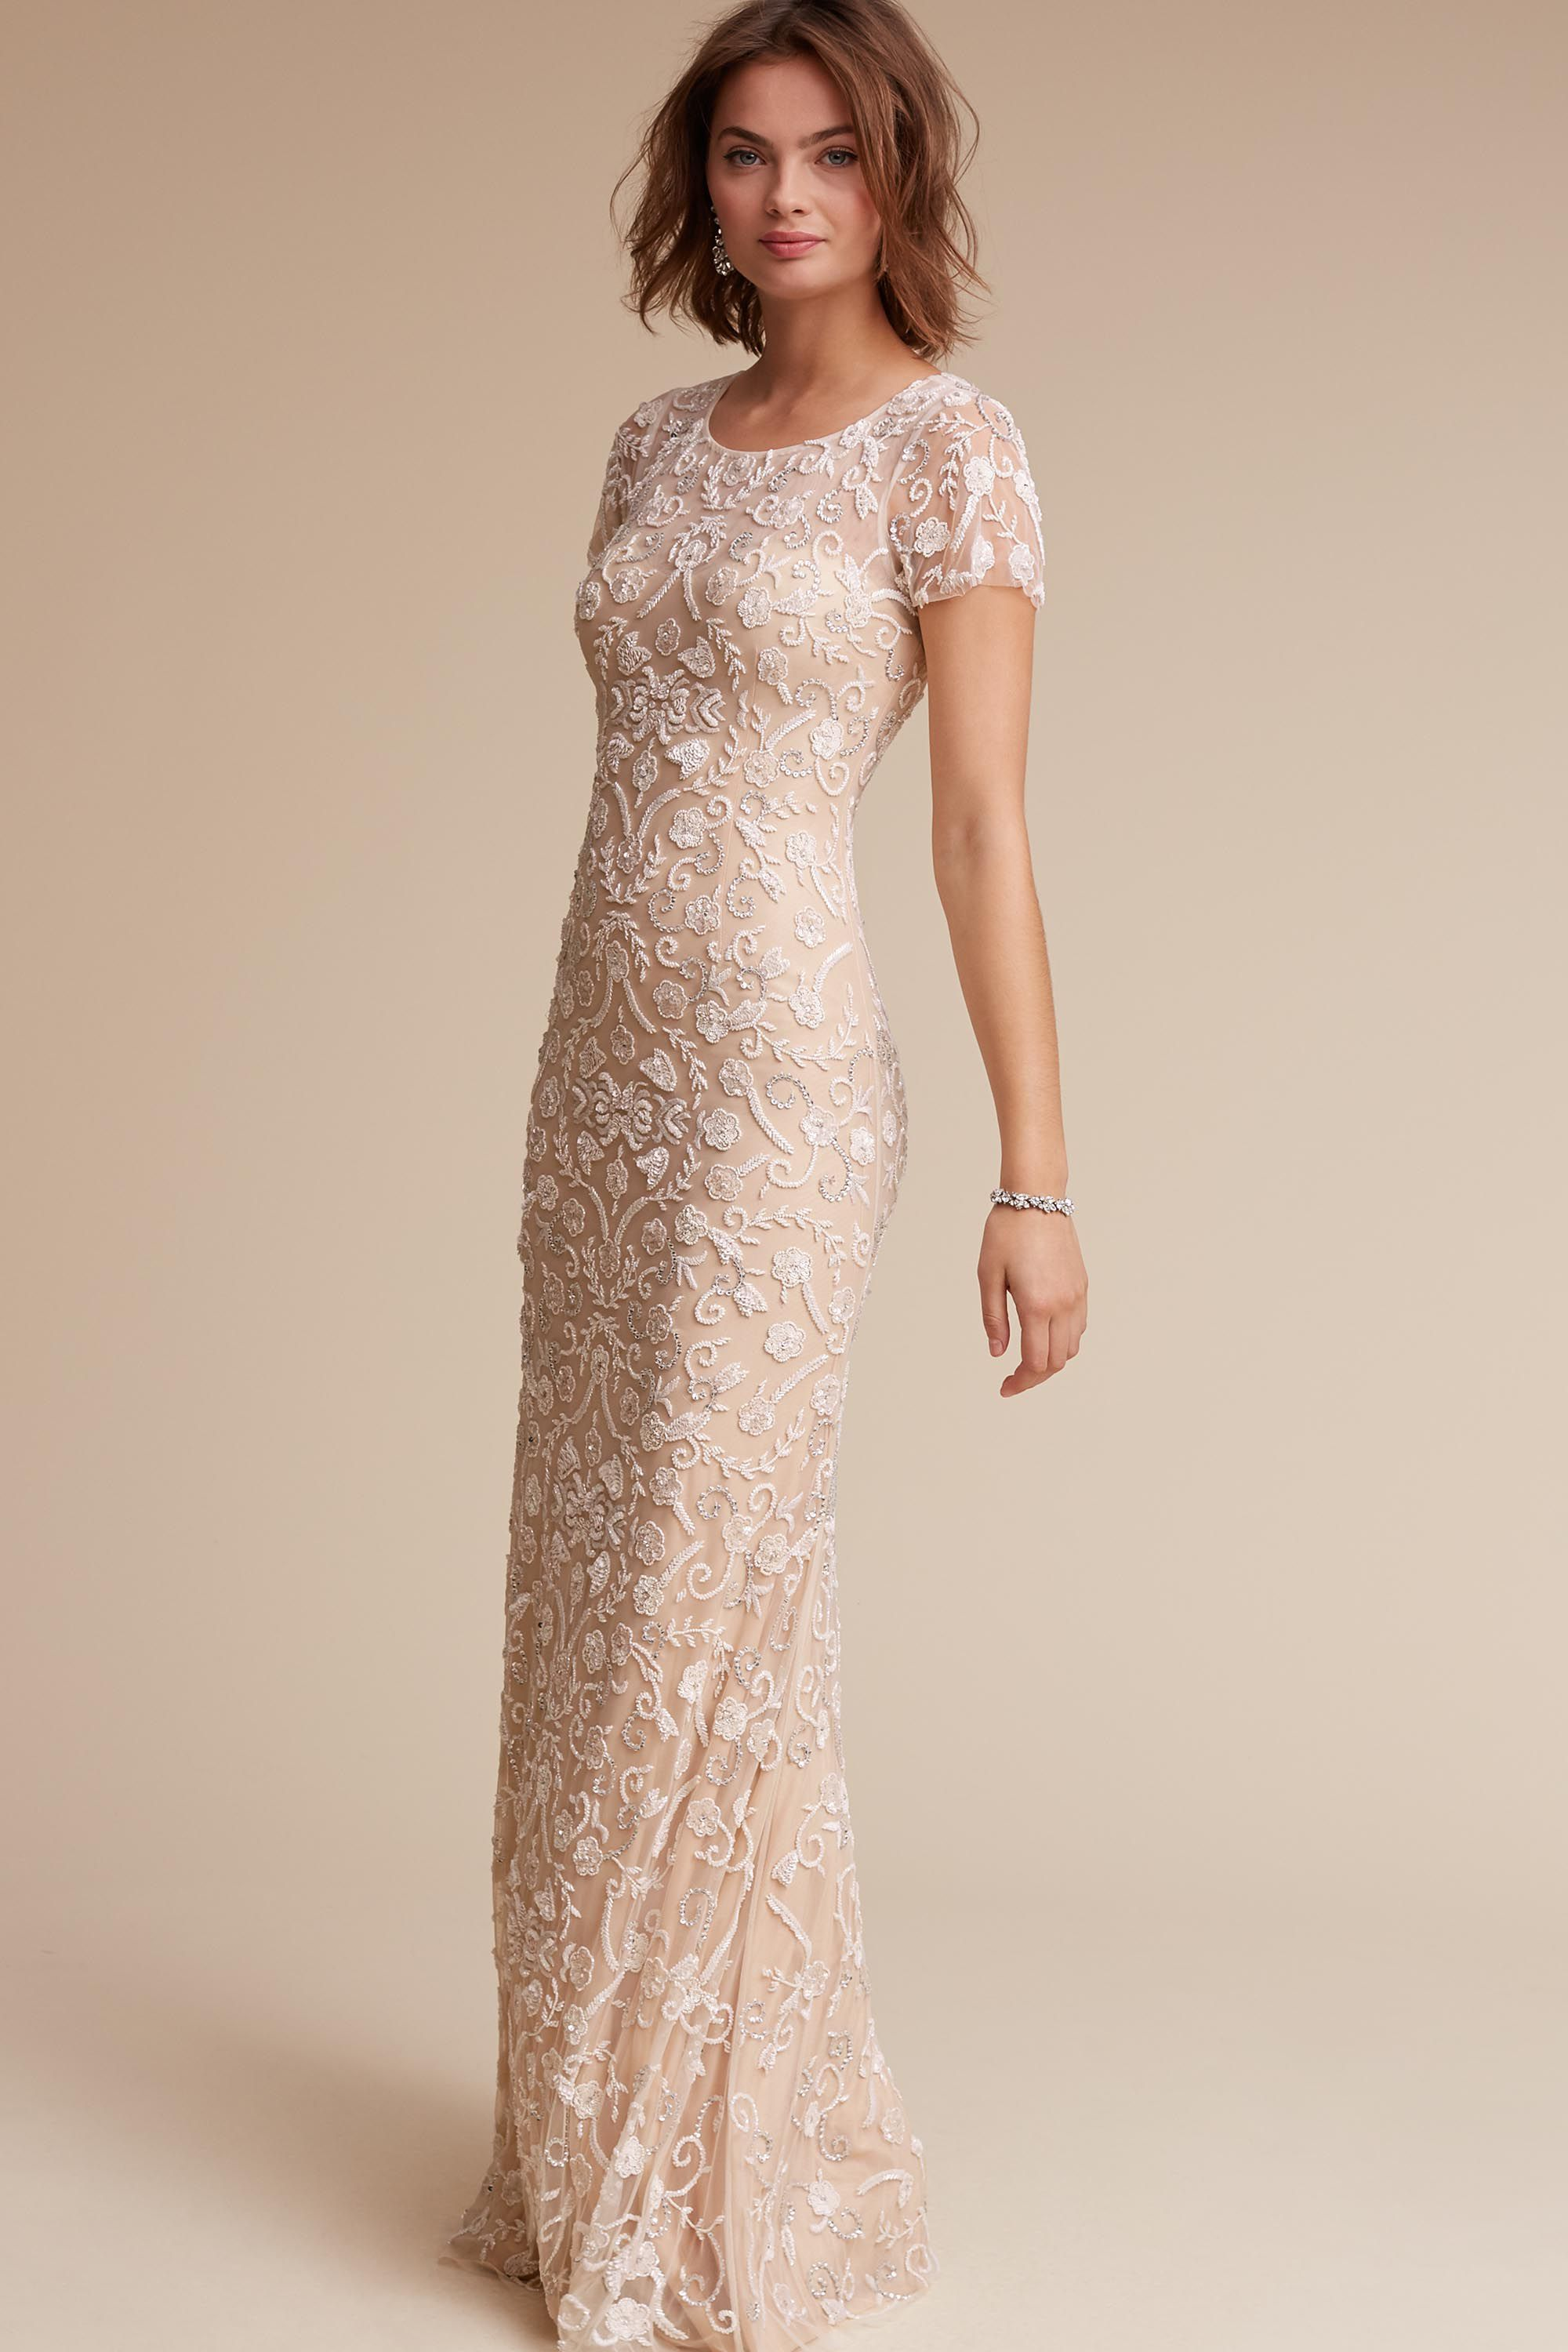 Essex Gown from @BHLDN | Weddings | Pinterest | Gowns, Wedding dress ...